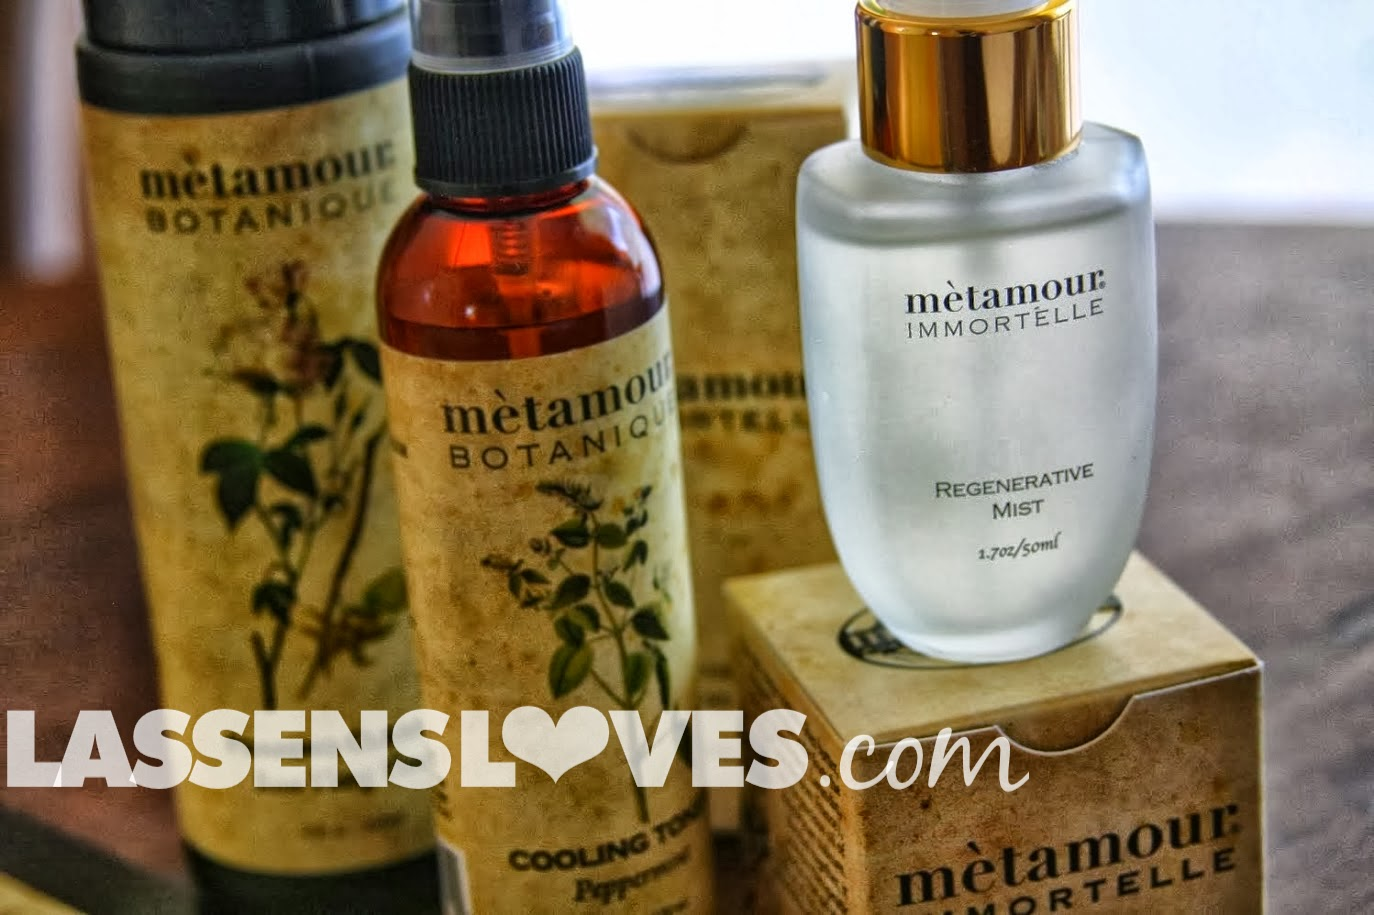 lassensloves.com, Lassen's, Metamour+Immortelle, Metamour+Bontanique, Cooling+Toner, Regenerative+Mist